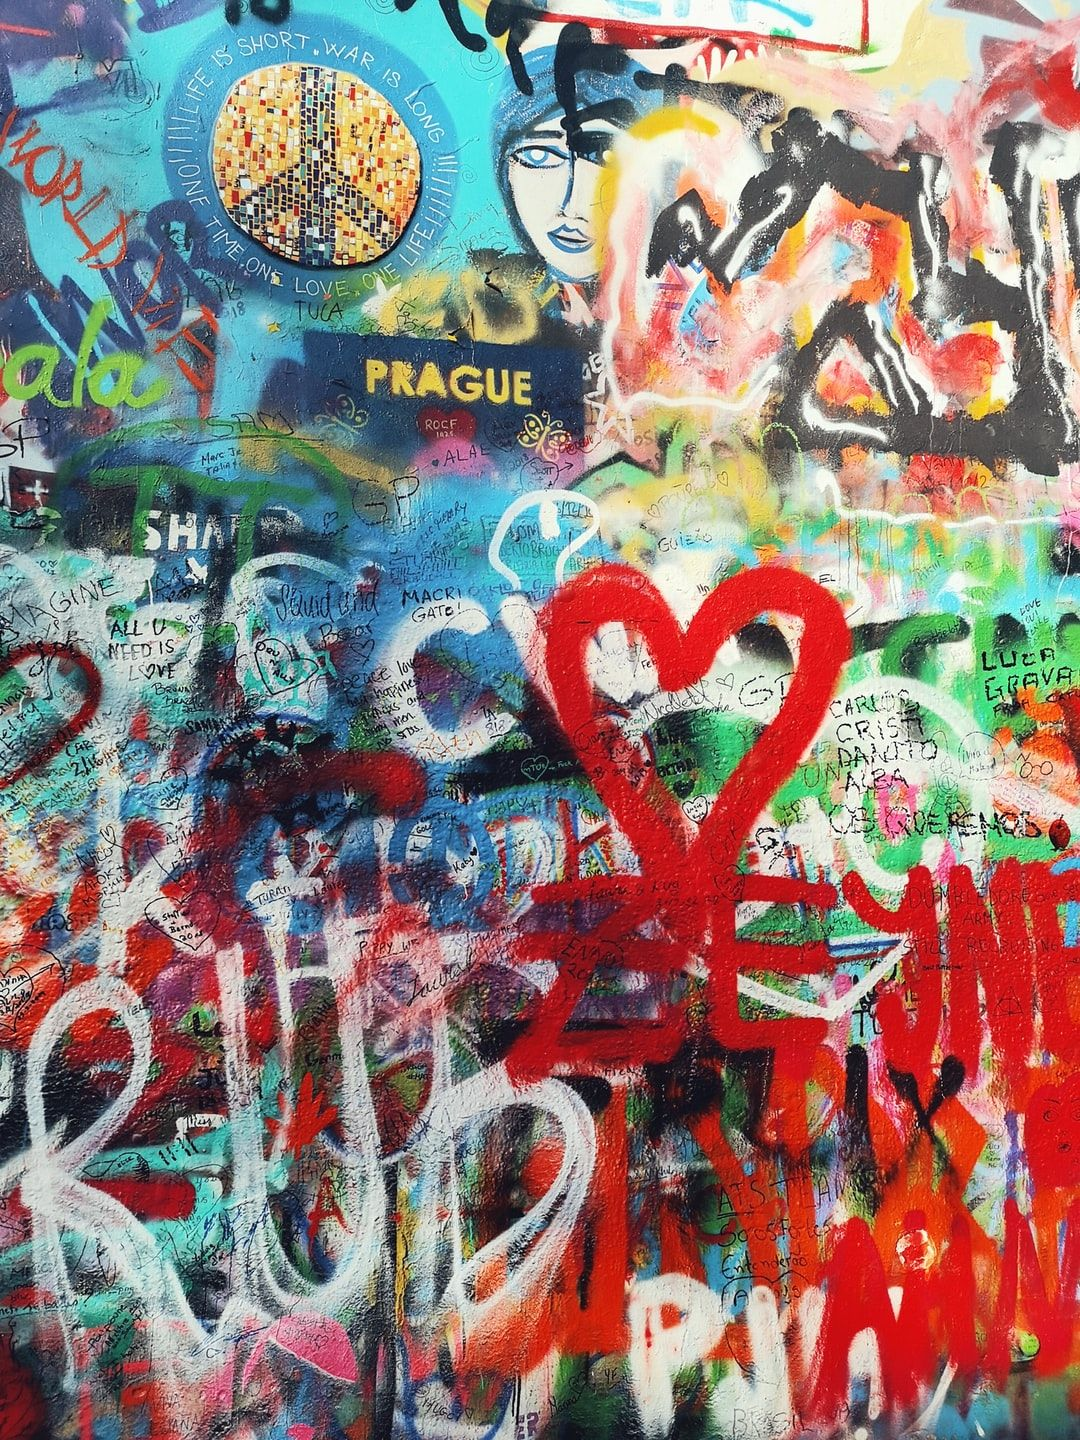 Lennon Wall (Prague). Download this photo by camila waz on Unsplash